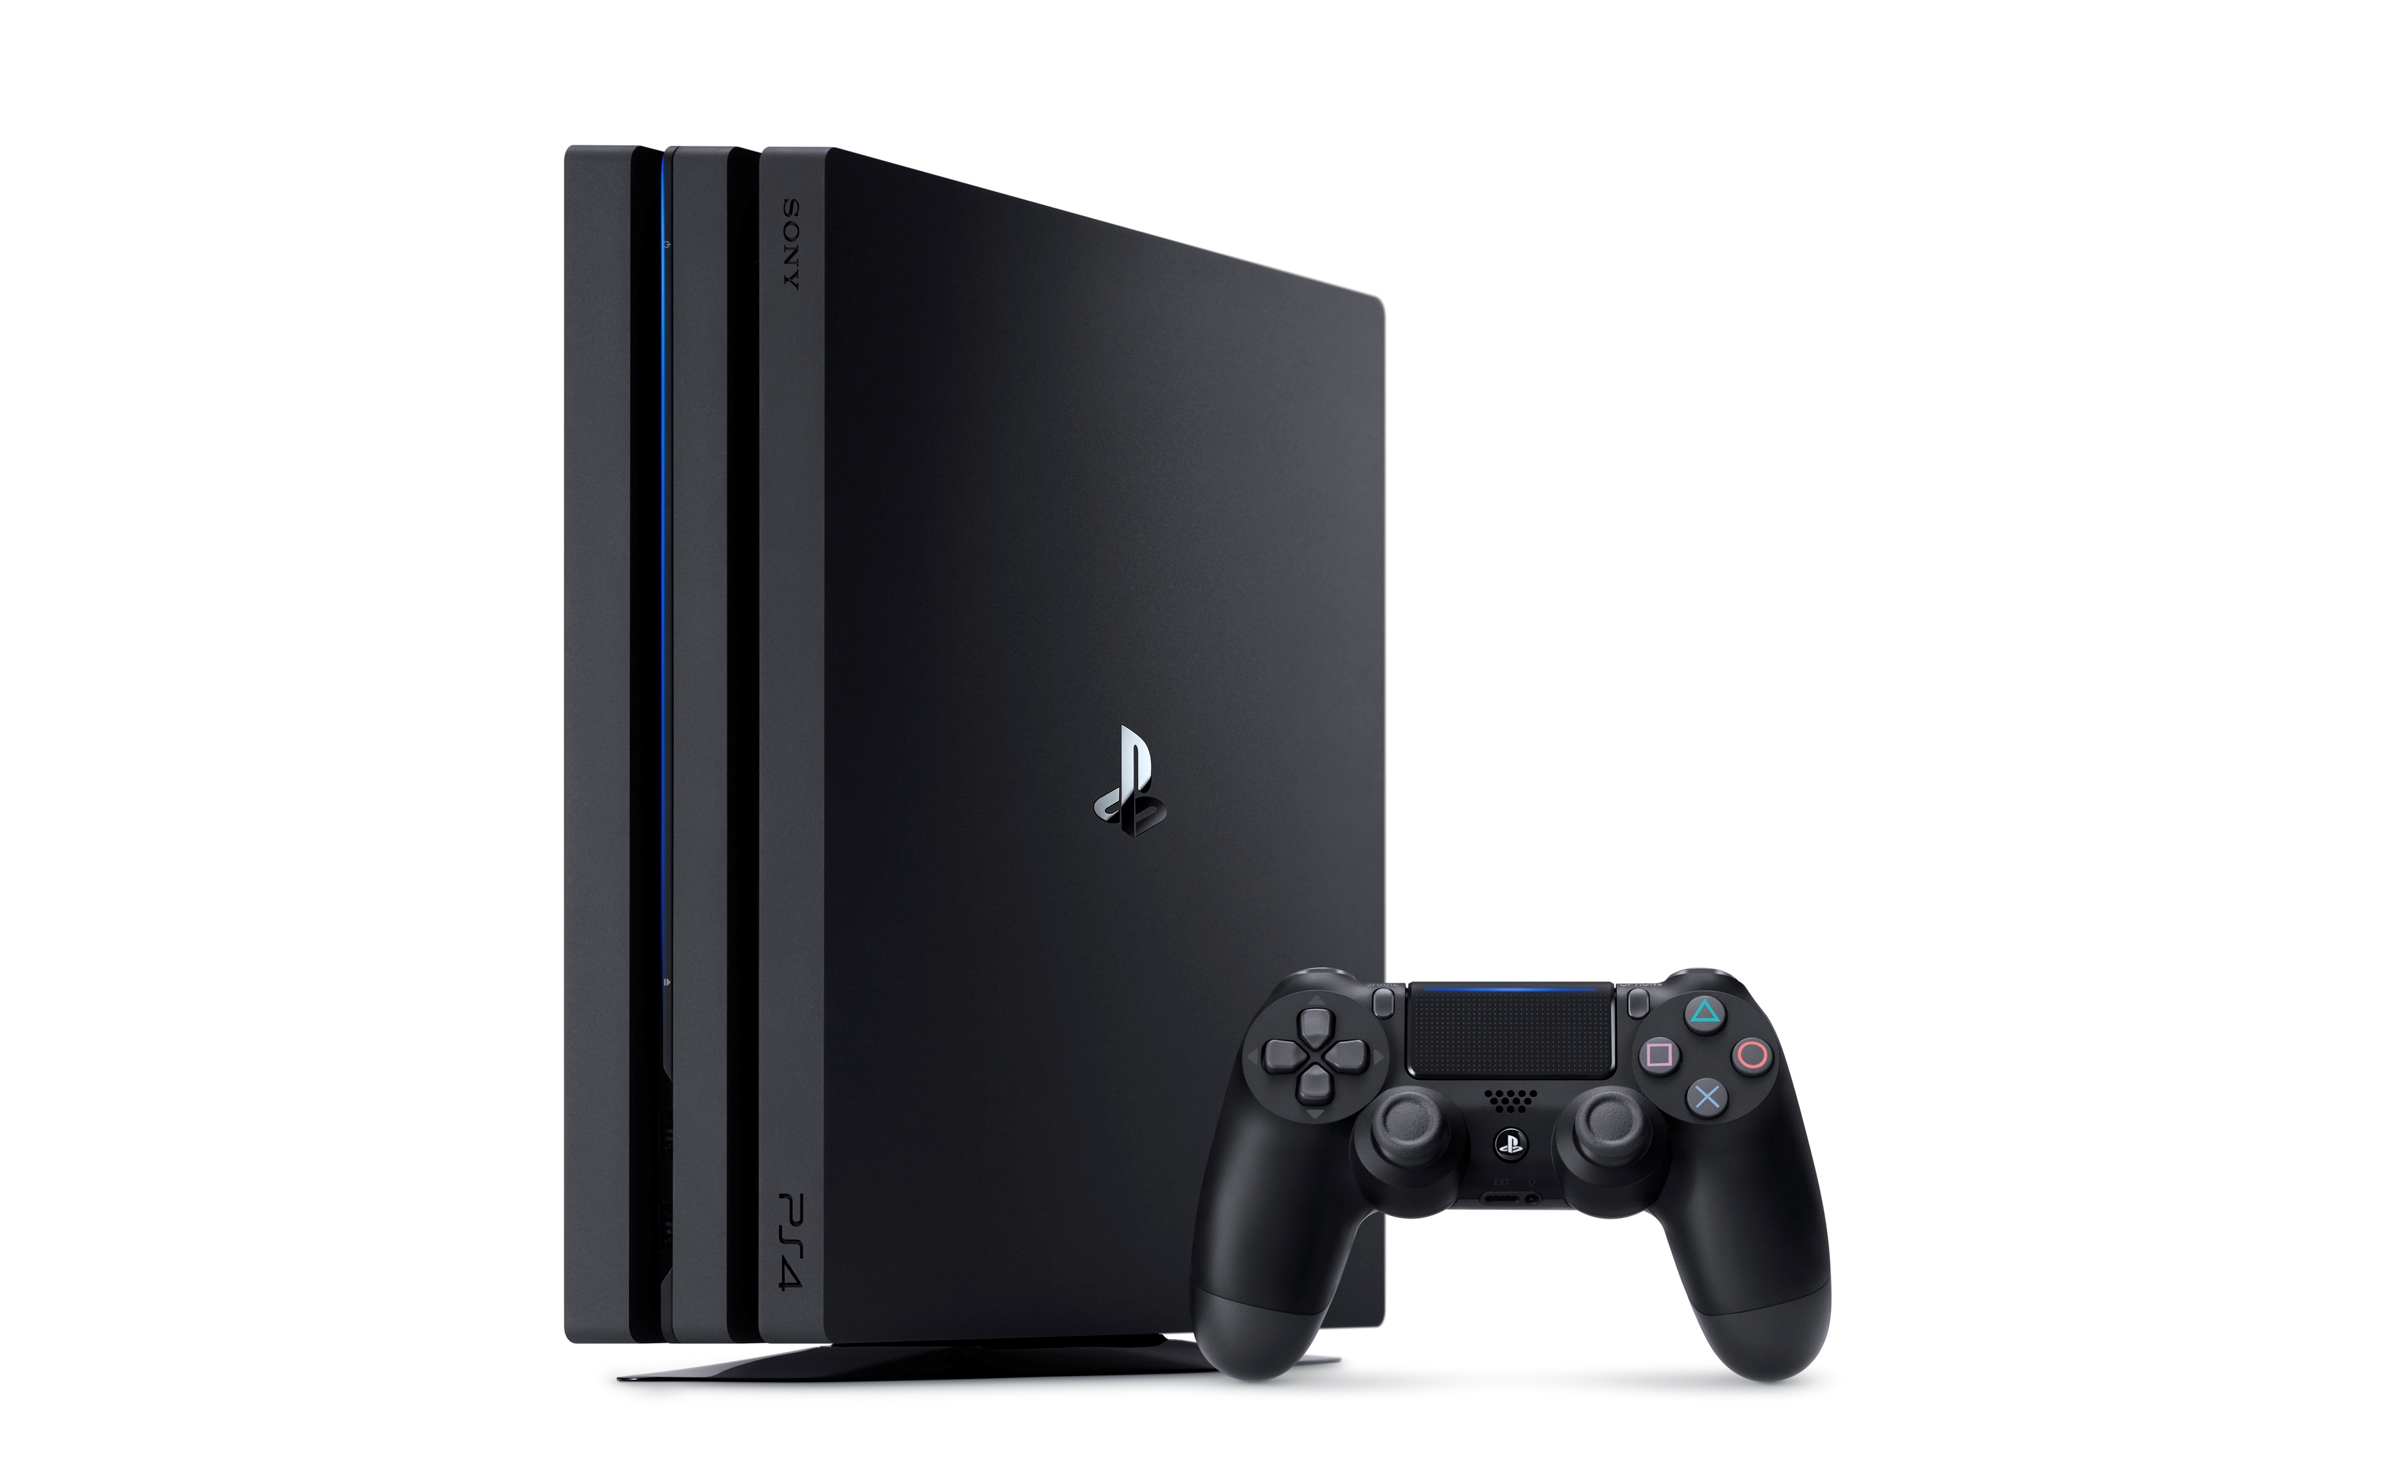 ps4_7000_01_withnotice